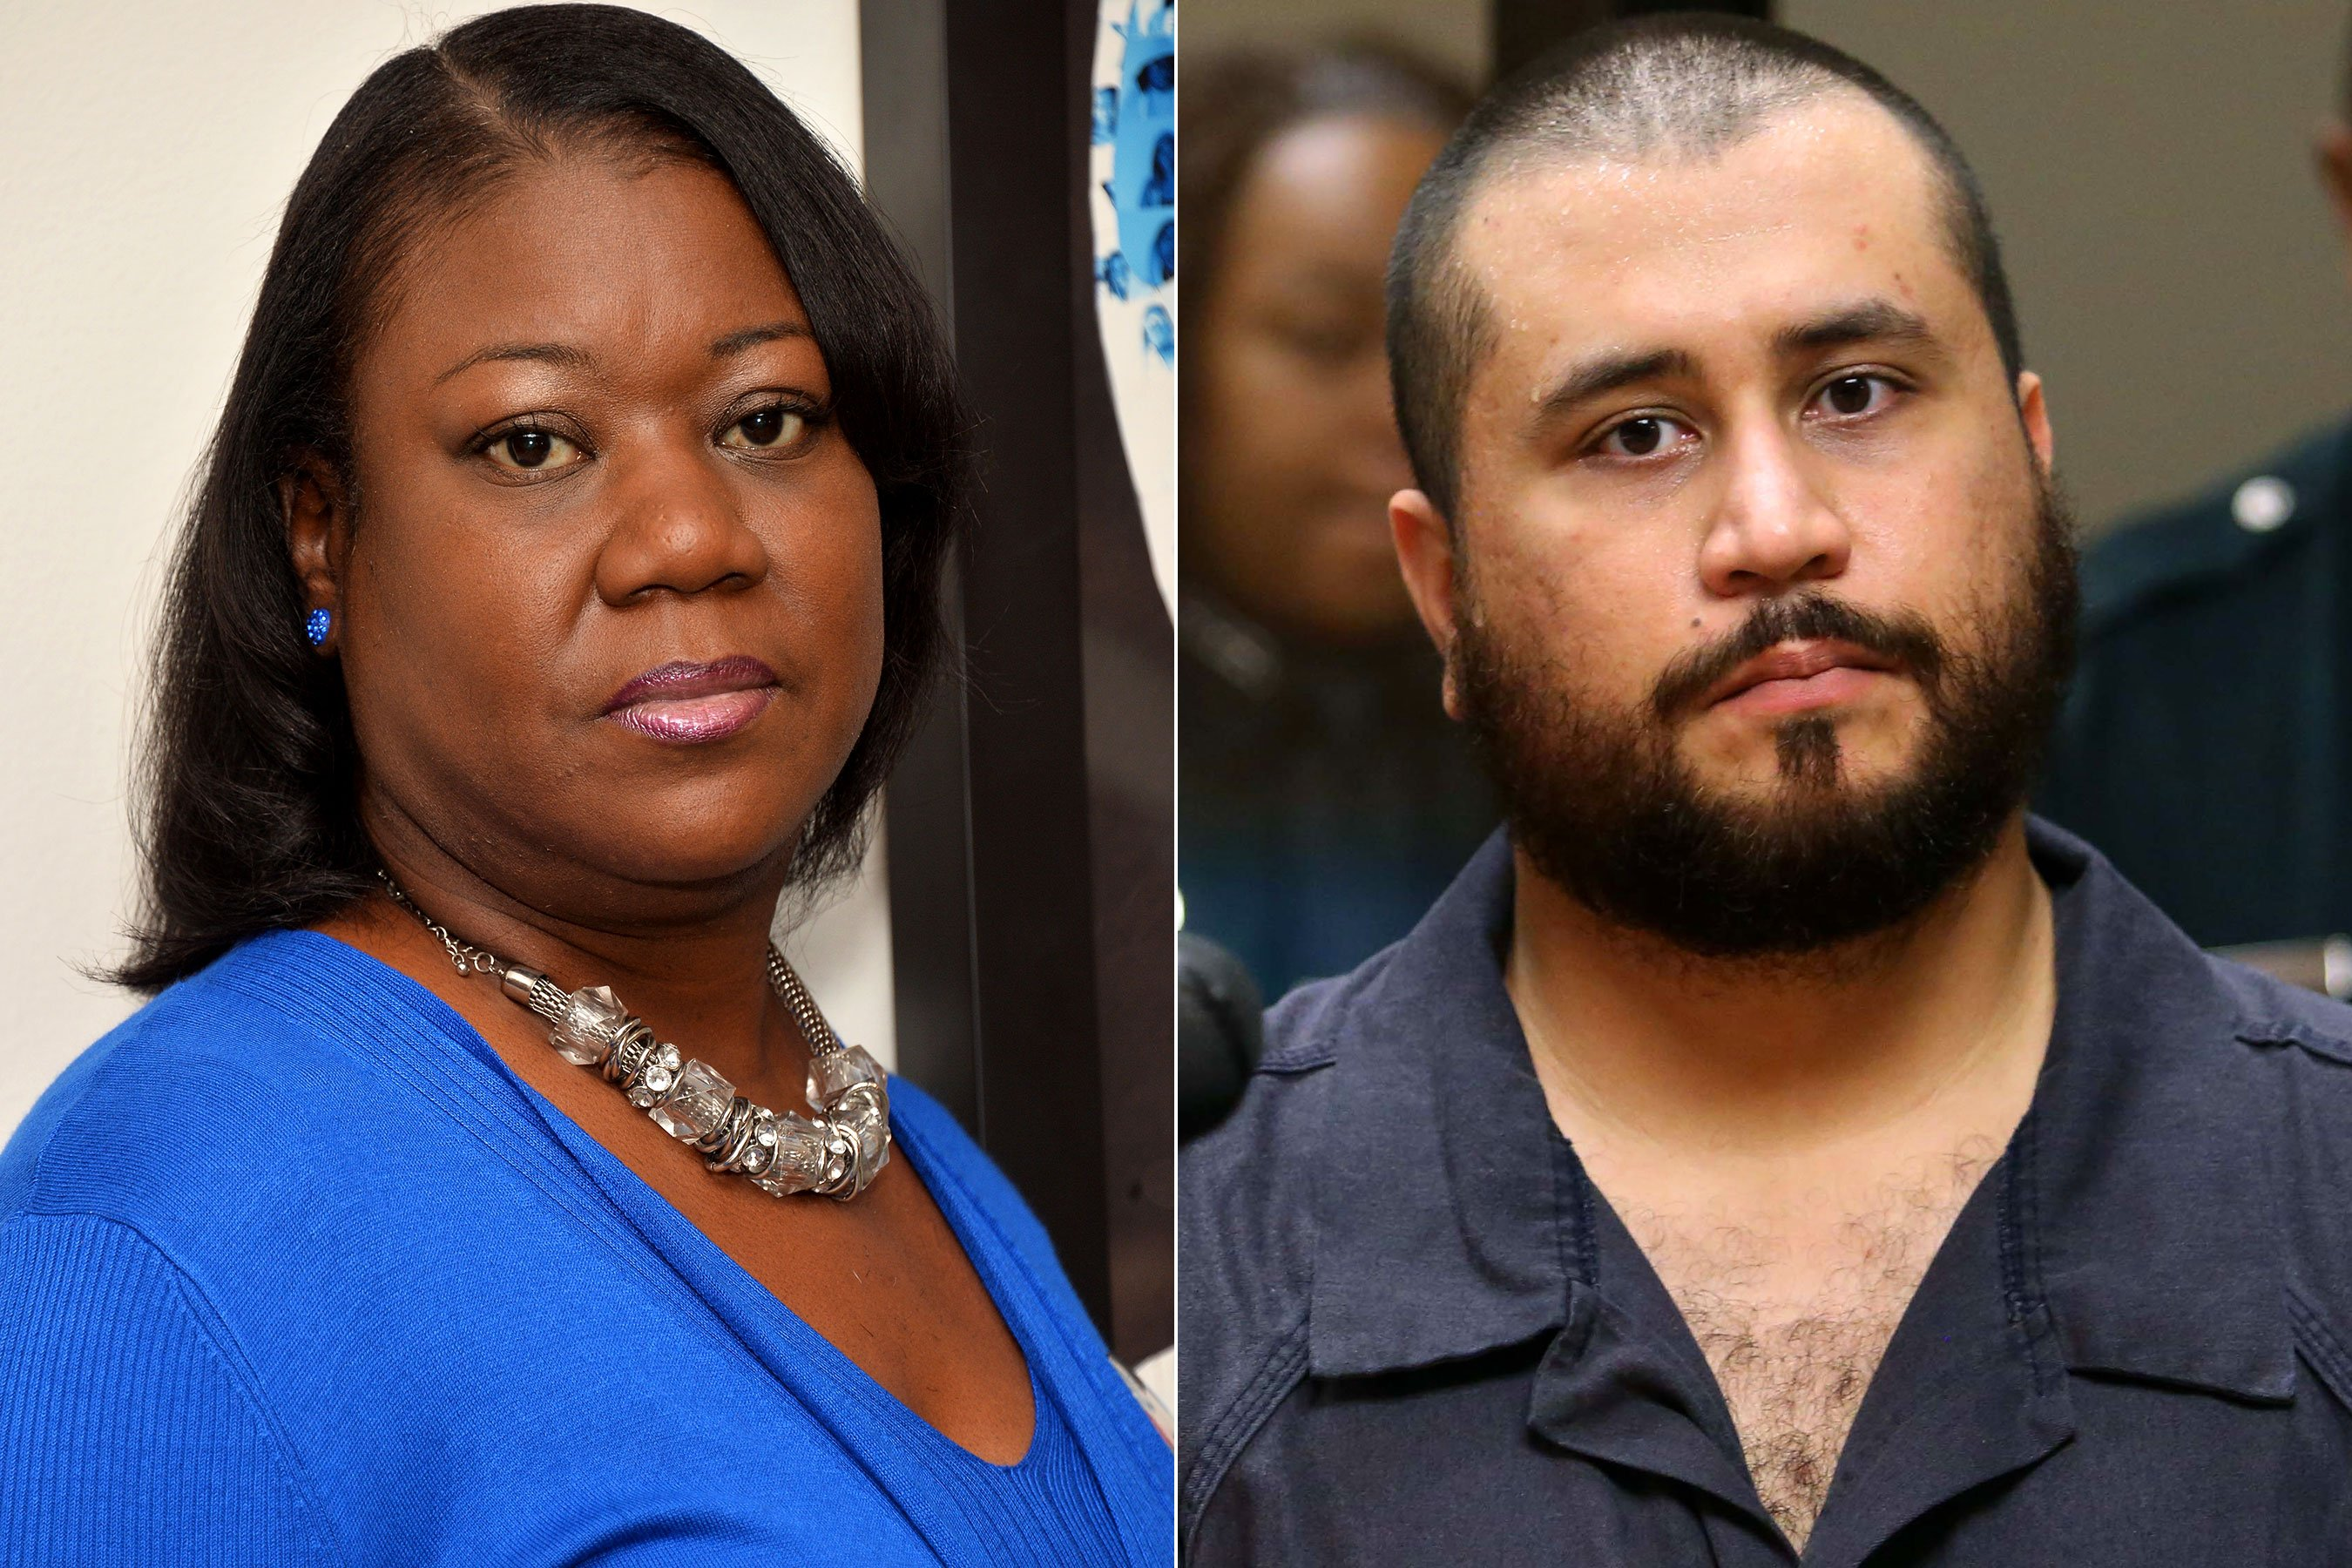 Trayvon Martin's Mom Hasn't Forgiven George Zimmerman, Who Killed Him, But Knows She Has To